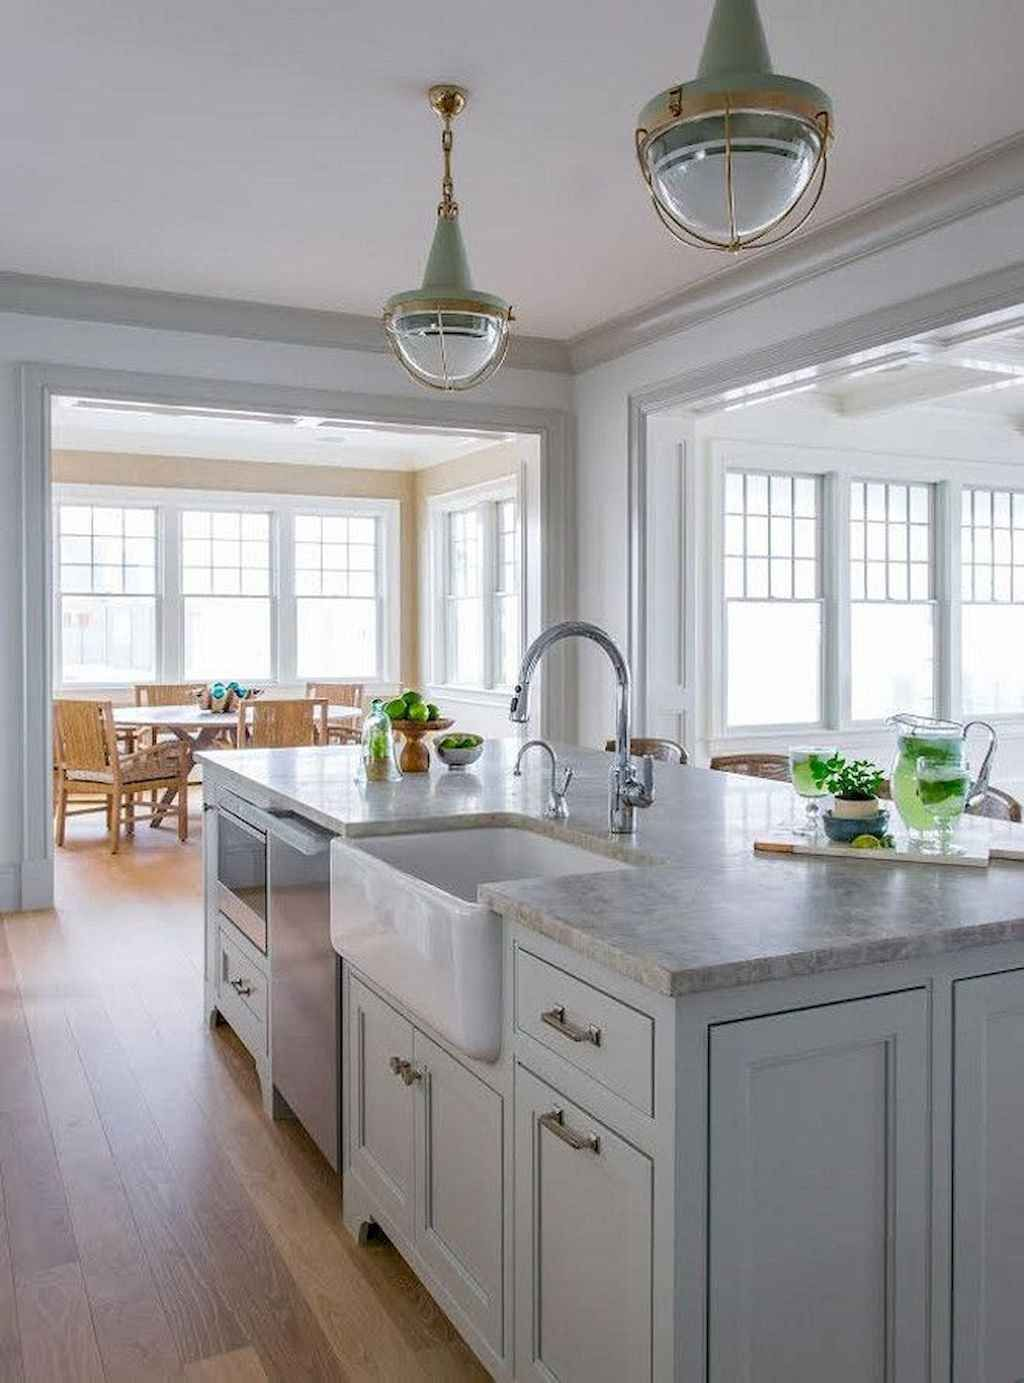 75 farmhouse gray kitchen cabinet design ideas with images kitchen island with sink on farmhouse kitchen grey cabinets id=29410